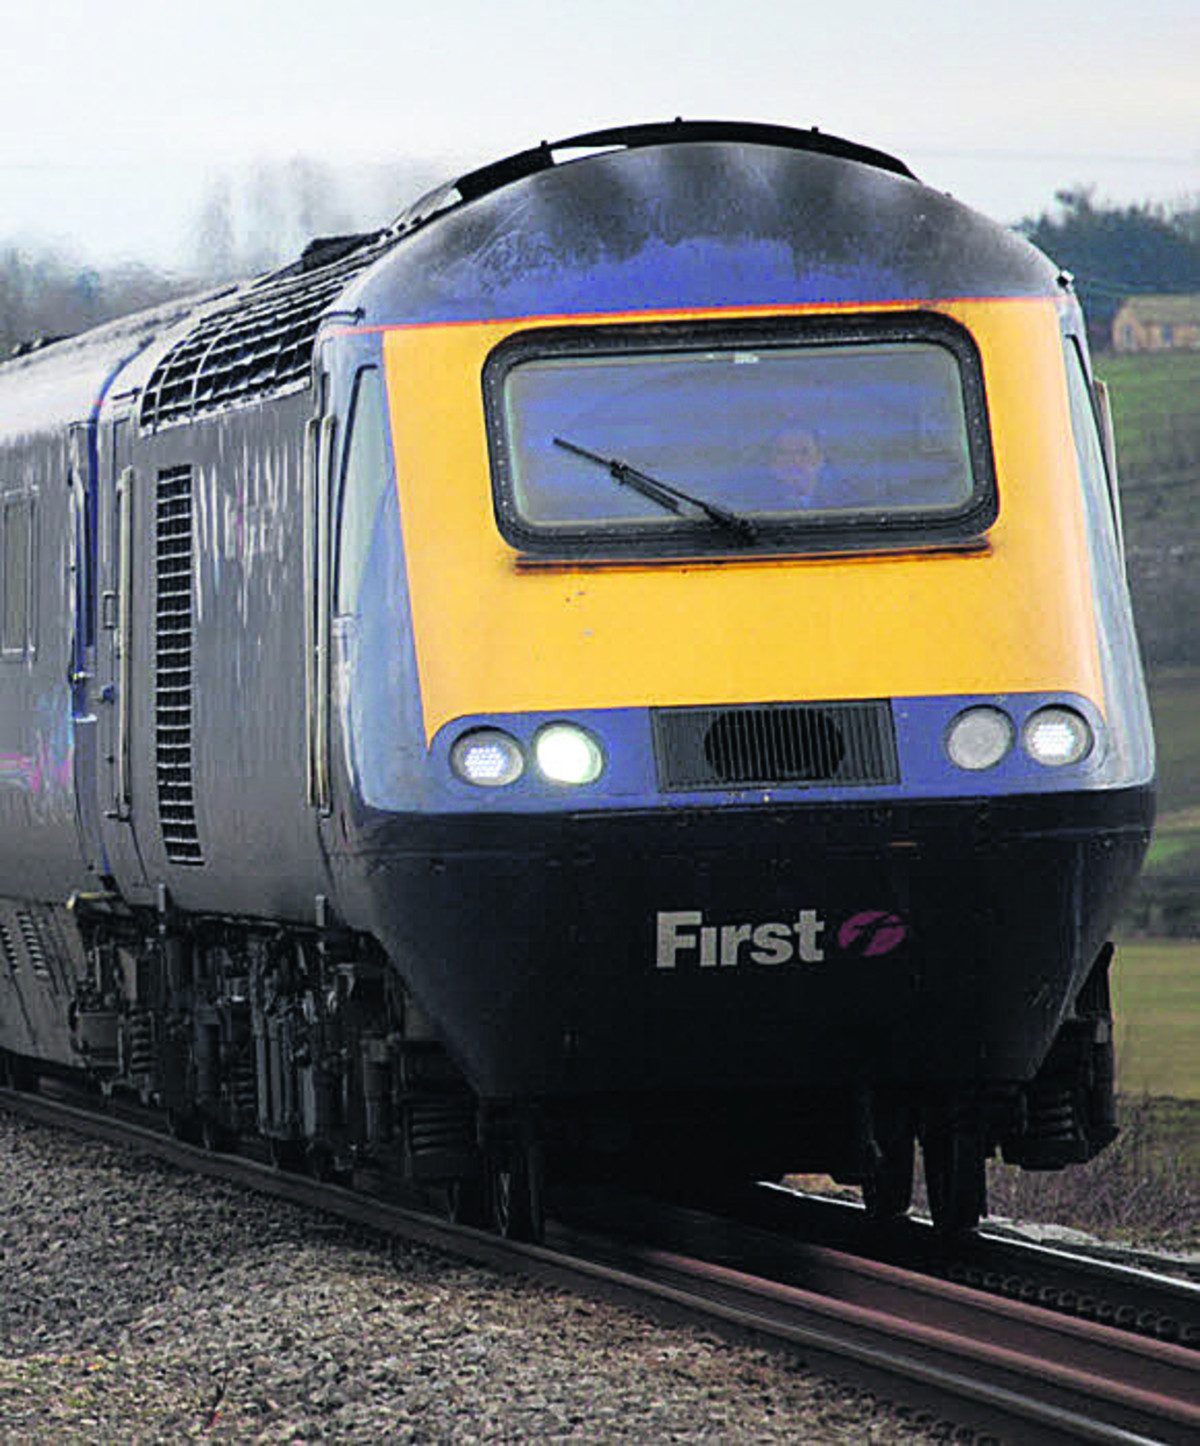 Signalling problems cause delays on First Great Western services